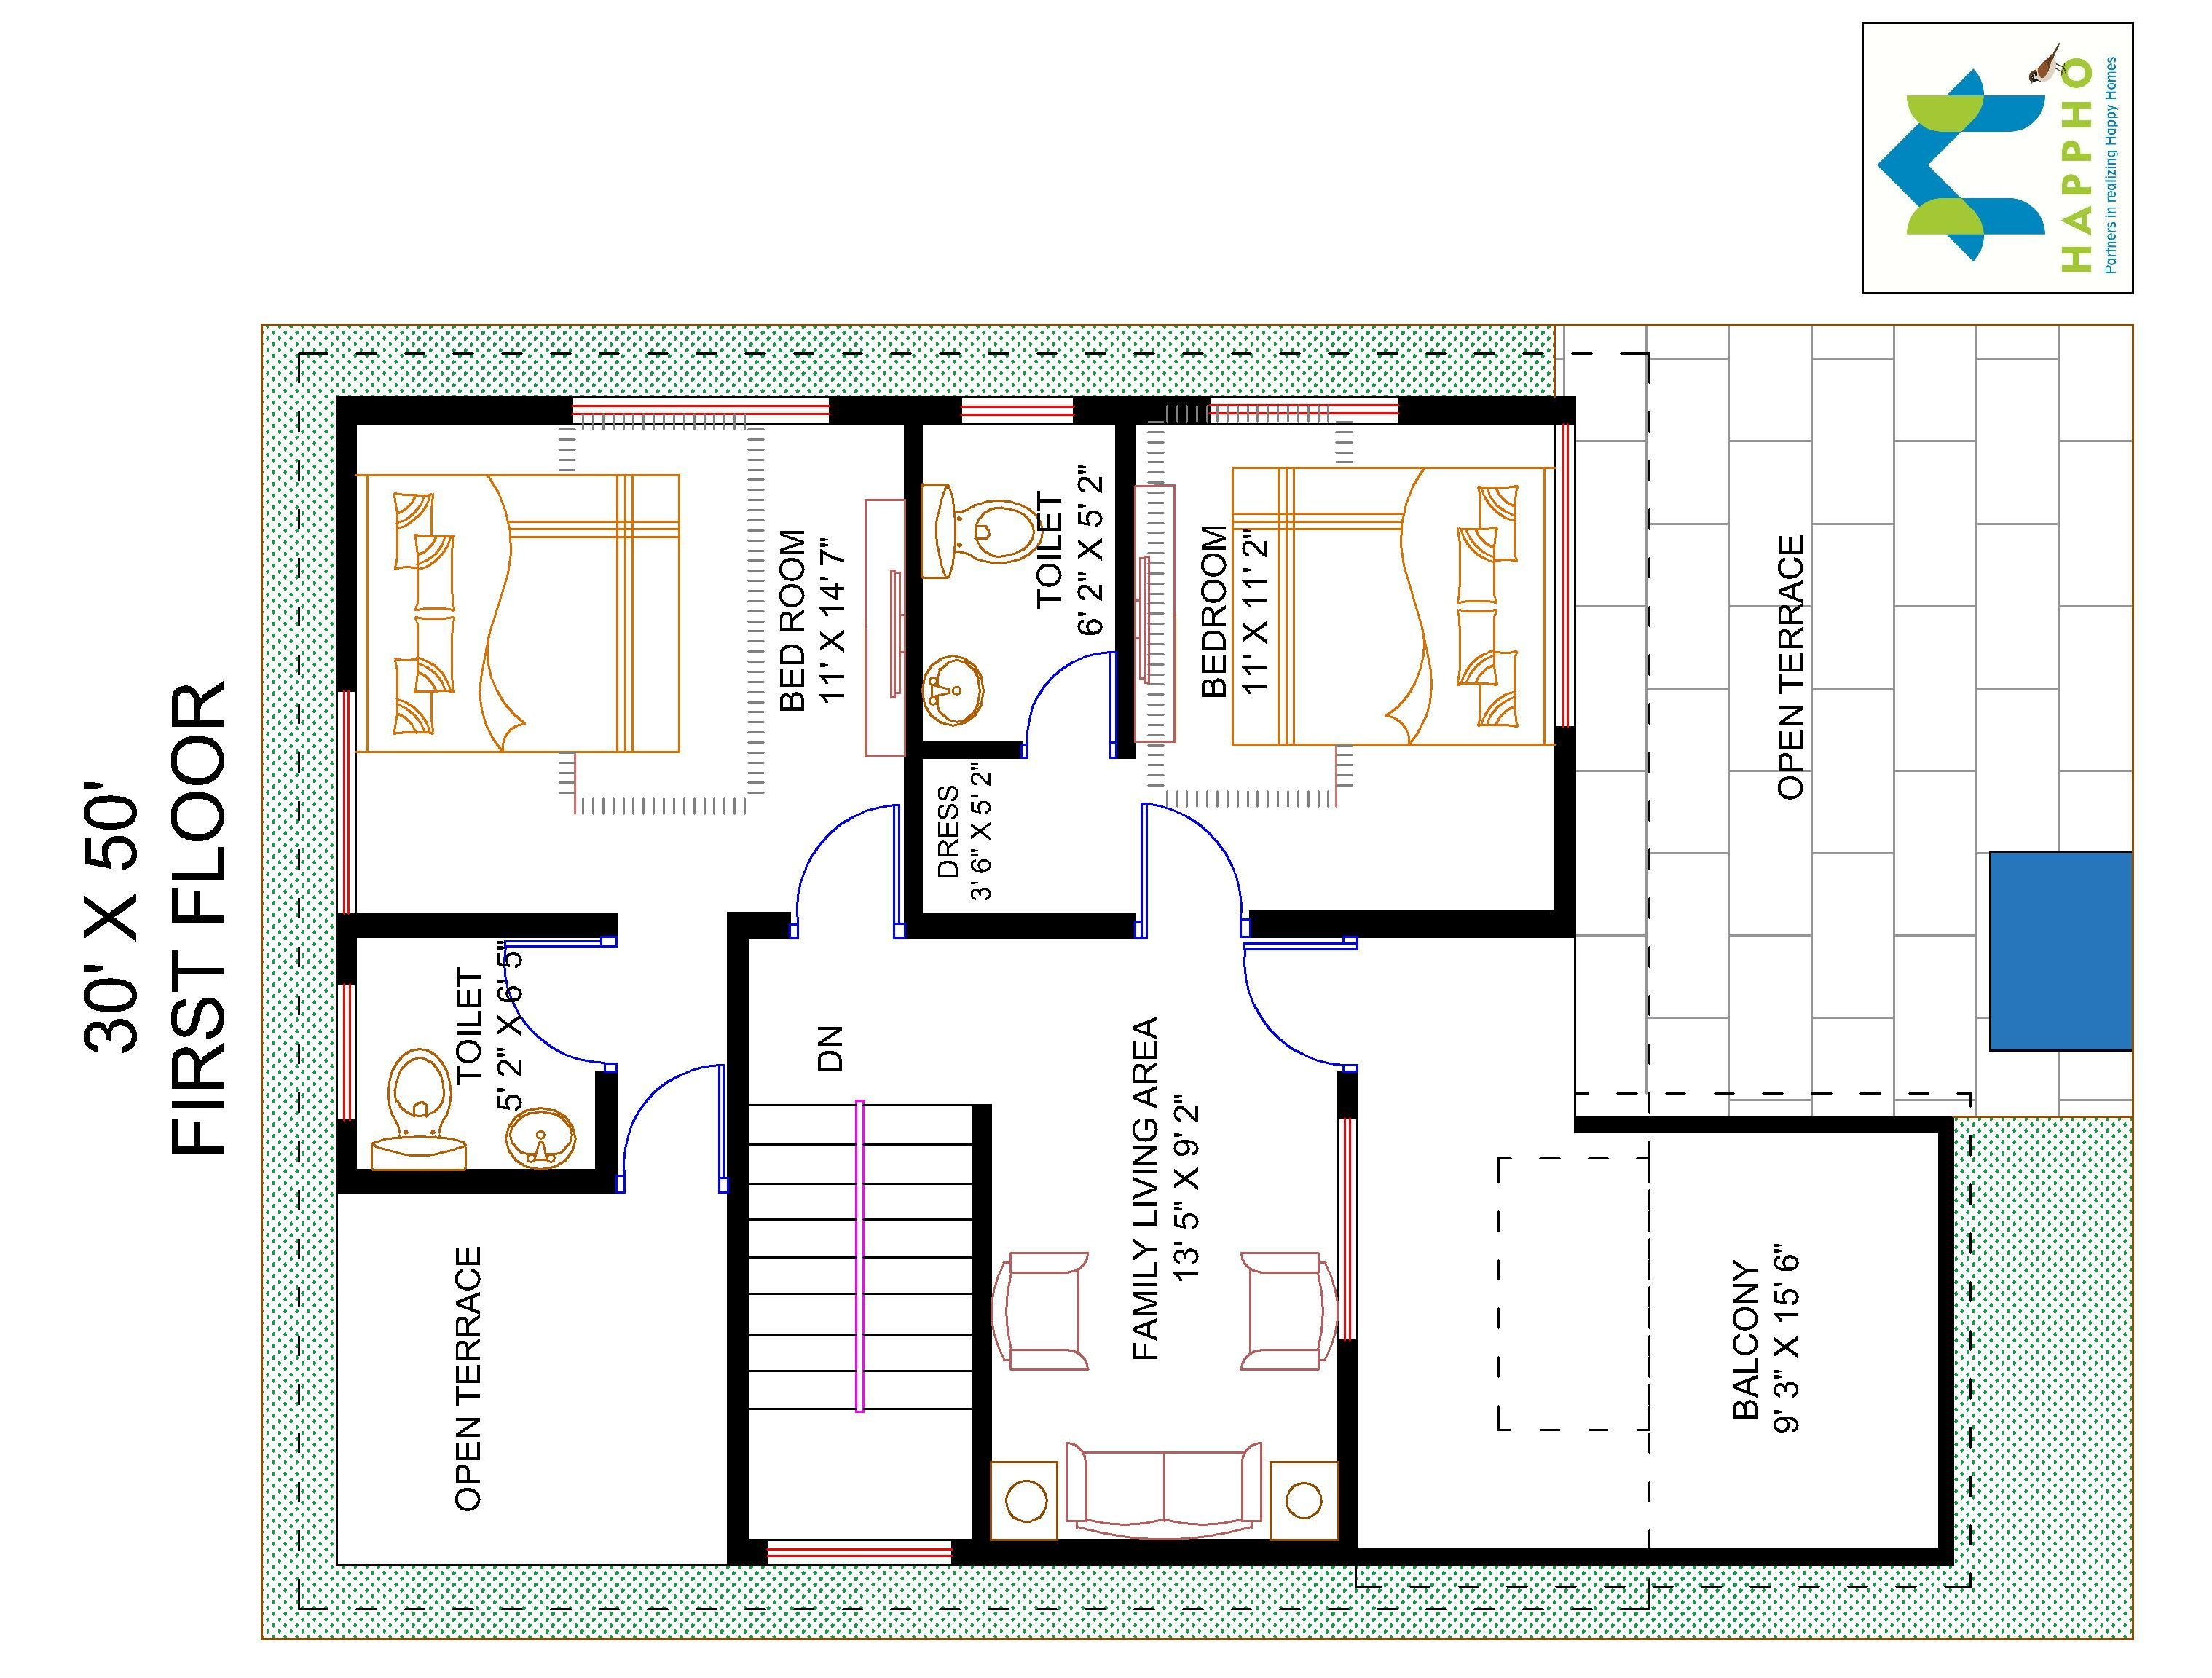 4 bhk floor plan for 30 x 50 plot 1500 square feet 166 for Floor plan for 4bhk house